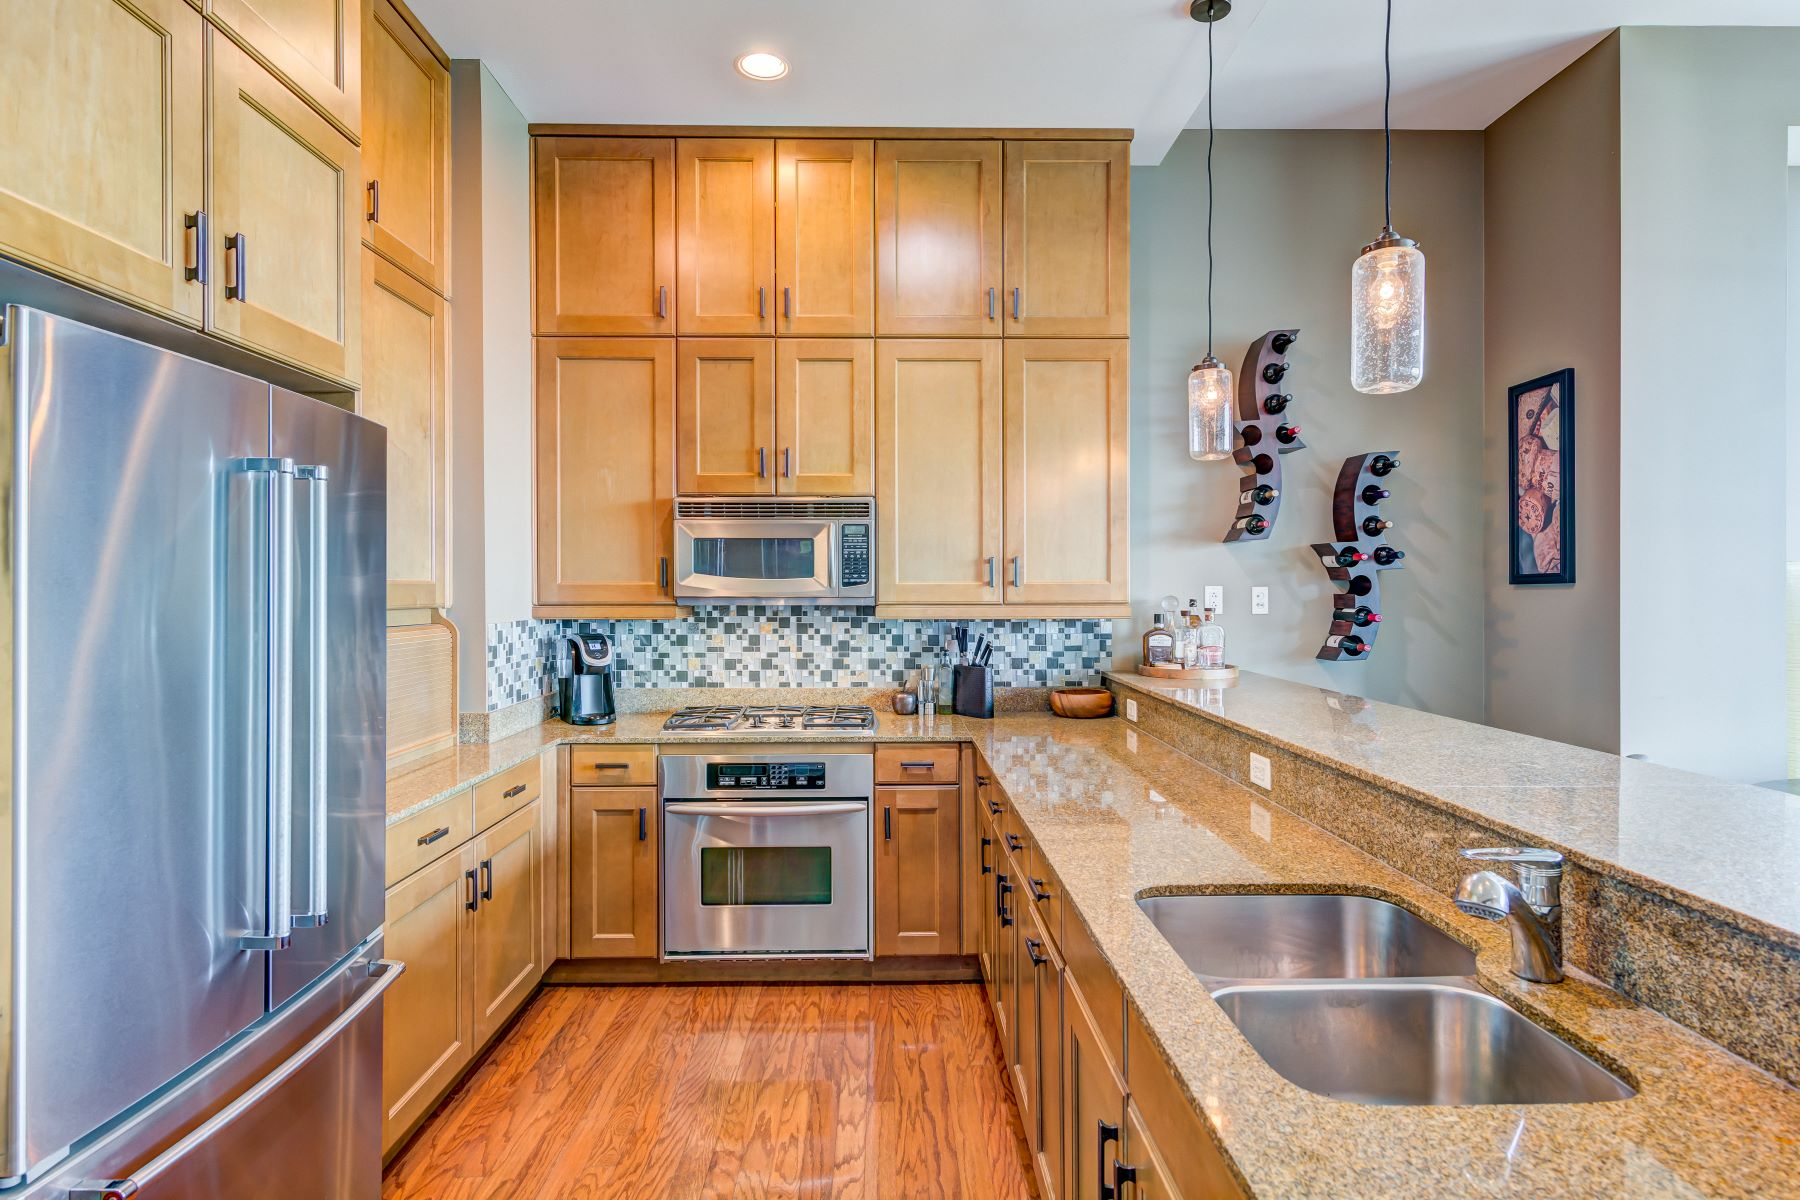 Additional photo for property listing at Live the Dream in the Heart of Clayton 8025 Maryland Avenue, #5B Clayton, Missouri 63105 United States